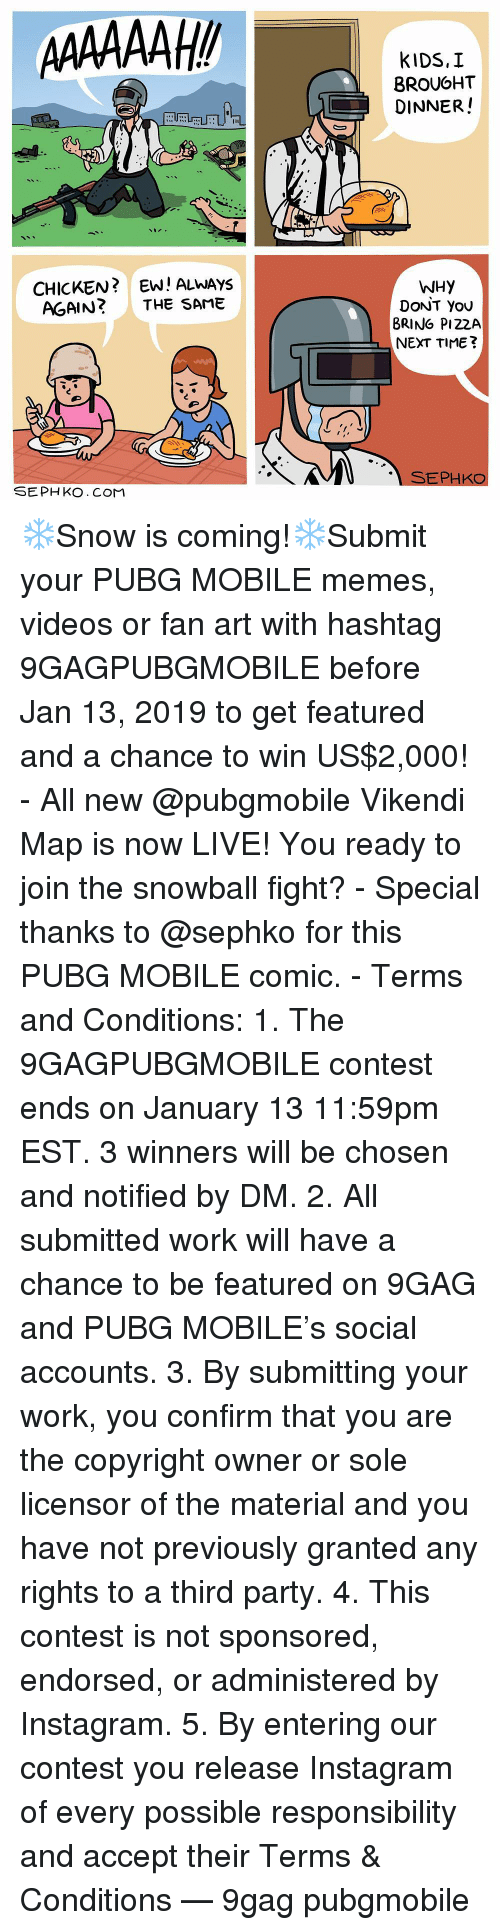 9gag, Instagram, and Memes: BROUGHT  DINNER!  sae  CHICKEN?EW! ALWAYS  AGAIN? THE SAME  WHY  DoNT You  BRING PI22A  NEXT TIME?  SEPHKO  SEPH KO. CoMM ❄️Snow is coming!❄️Submit your PUBG MOBILE memes, videos or fan art with hashtag 9GAGPUBGMOBILE before Jan 13, 2019 to get featured and a chance to win US$2,000! - All new @pubgmobile Vikendi Map is now LIVE! You ready to join the snowball fight? - Special thanks to @sephko for this PUBG MOBILE comic. - Terms and Conditions: 1. The 9GAGPUBGMOBILE contest ends on January 13 11:59pm EST. 3 winners will be chosen and notified by DM. 2. All submitted work will have a chance to be featured on 9GAG and PUBG MOBILE's social accounts. 3. By submitting your work, you confirm that you are the copyright owner or sole licensor of the material and you have not previously granted any rights to a third party. 4. This contest is not sponsored, endorsed, or administered by Instagram. 5. By entering our contest you release Instagram of every possible responsibility and accept their Terms & Conditions — 9gag pubgmobile